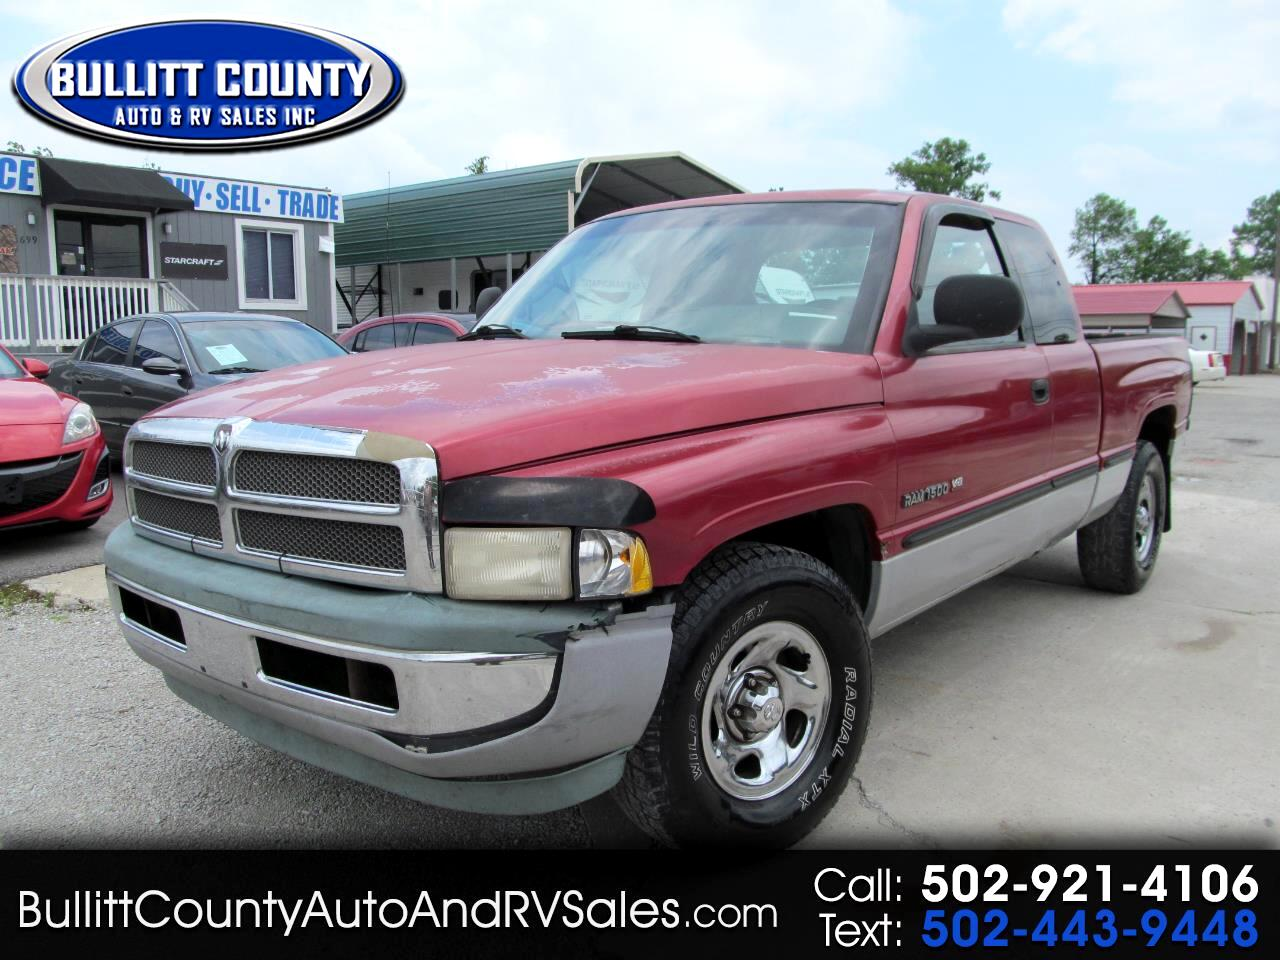 "1999 Dodge Ram 1500 2dr Club Cab 139"" WB"